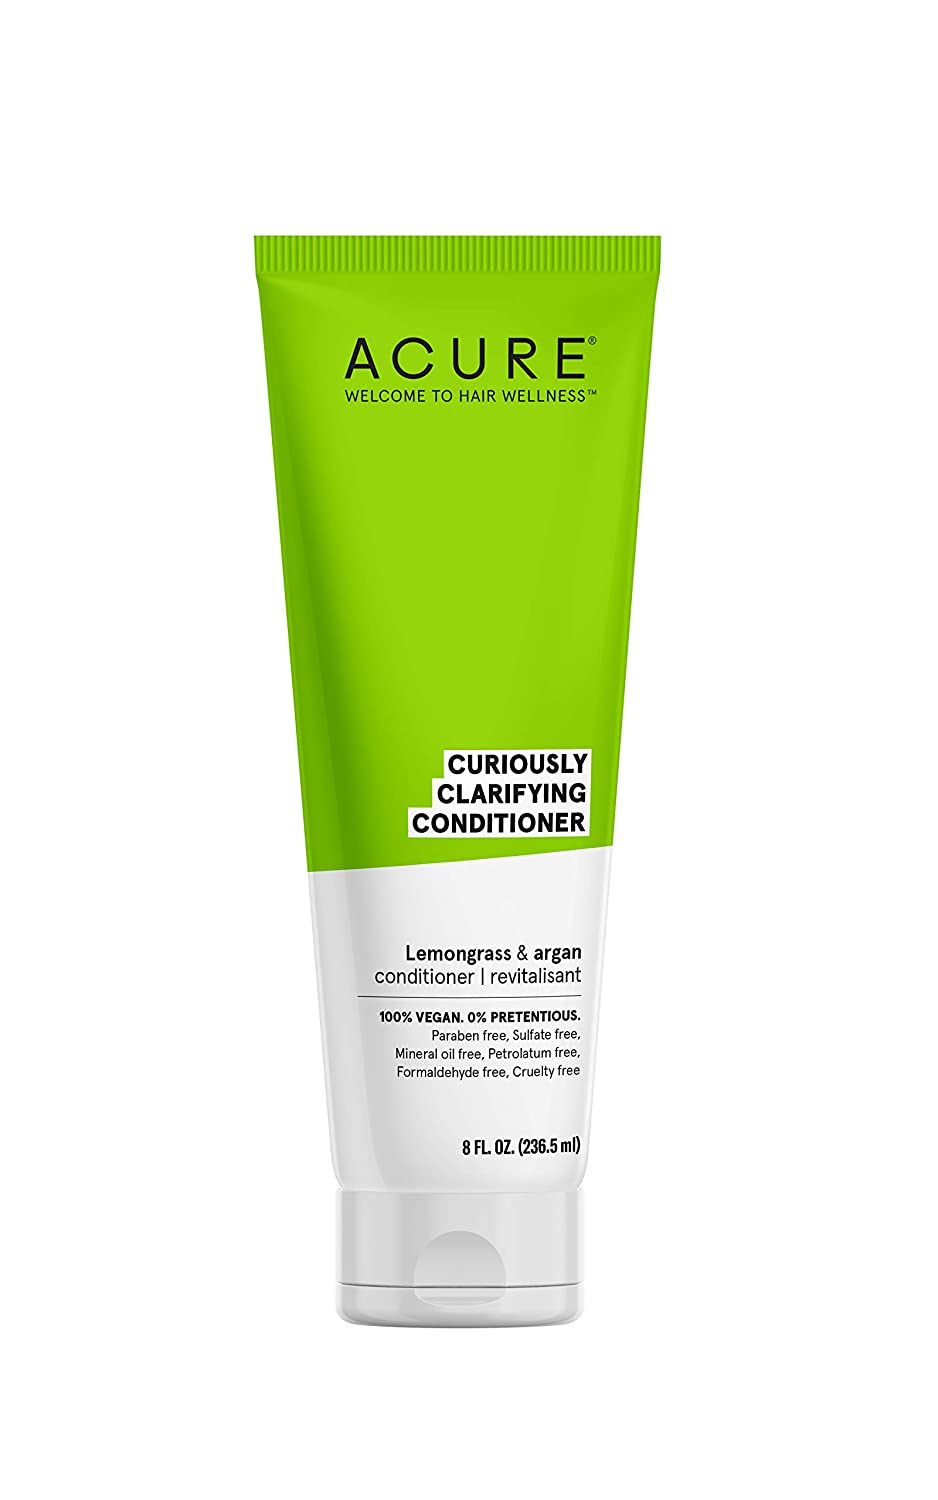 Acure Curiously Clarifying Conditioner Cleanses Argan Sales of SALE items from new Store works Gently